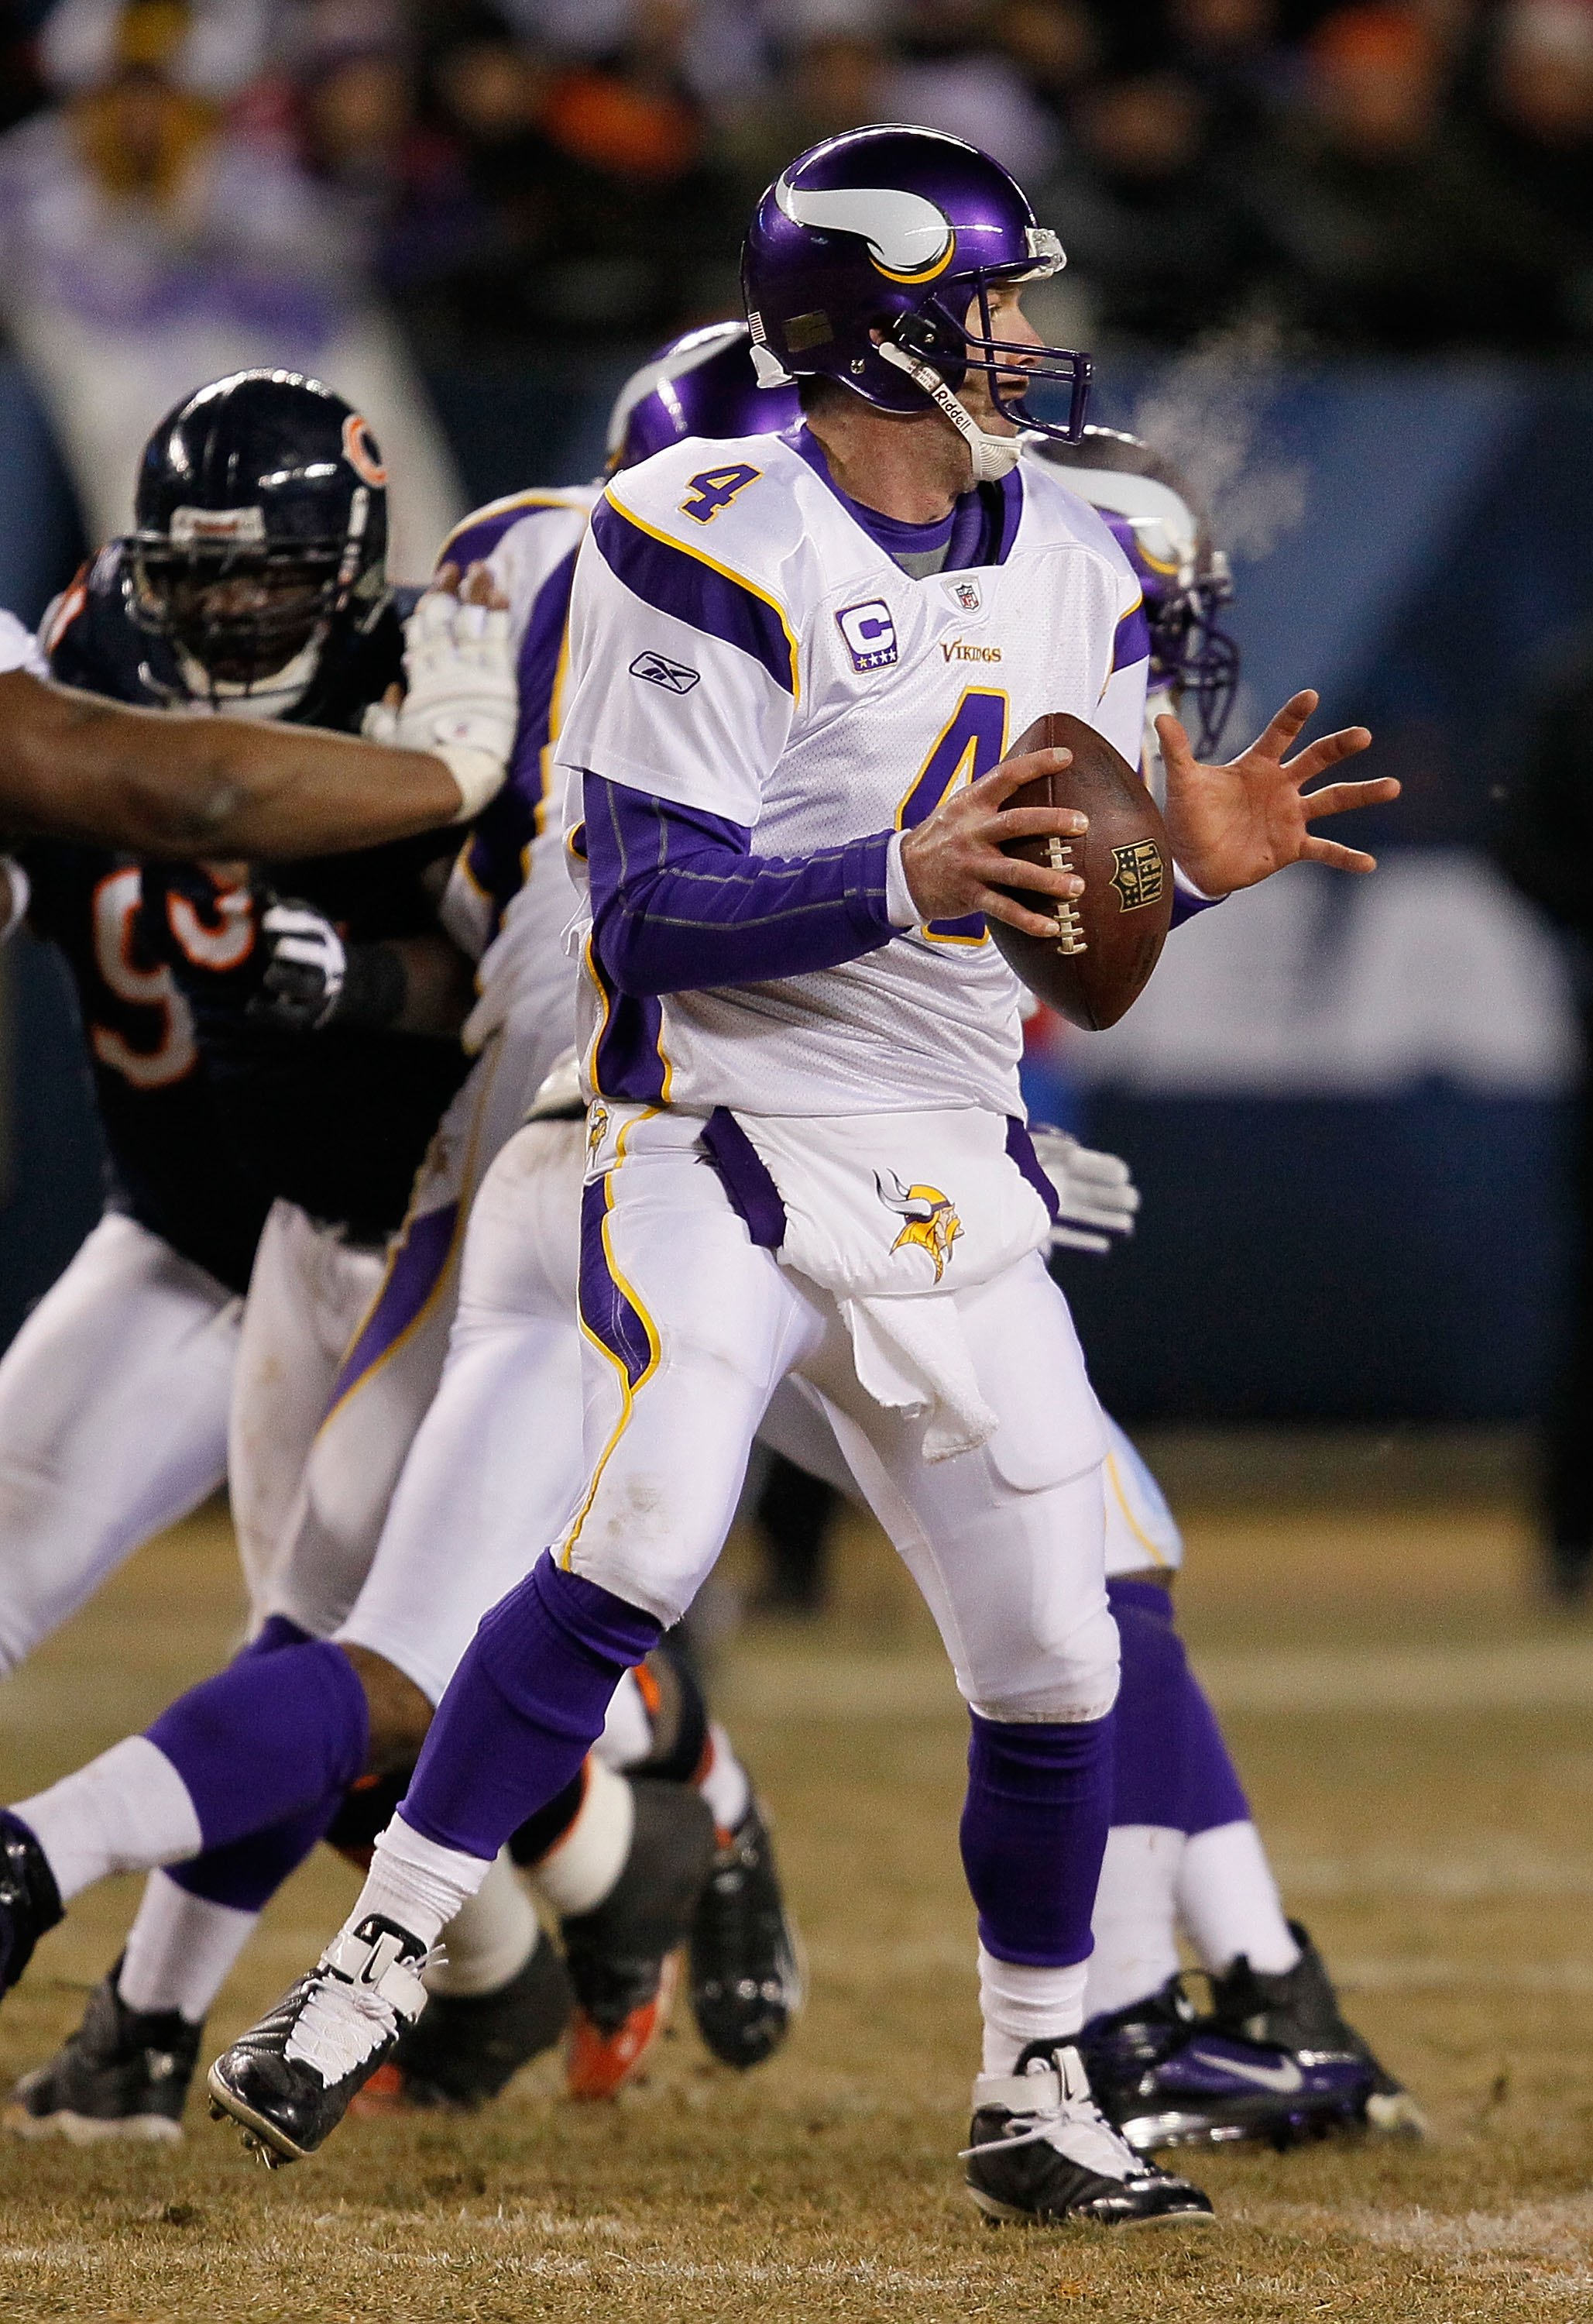 CHICAGO - DECEMBER 28: Brett Favre #4 of the Minnesota Vikings looks for a receiver against the Chicago Bears at Soldier Field on December 28, 2009 in Chicago, Illinois. The Bears defeated the Vikings 36-30 in overtime. (Photo by Jonathan Daniel/Getty Ima